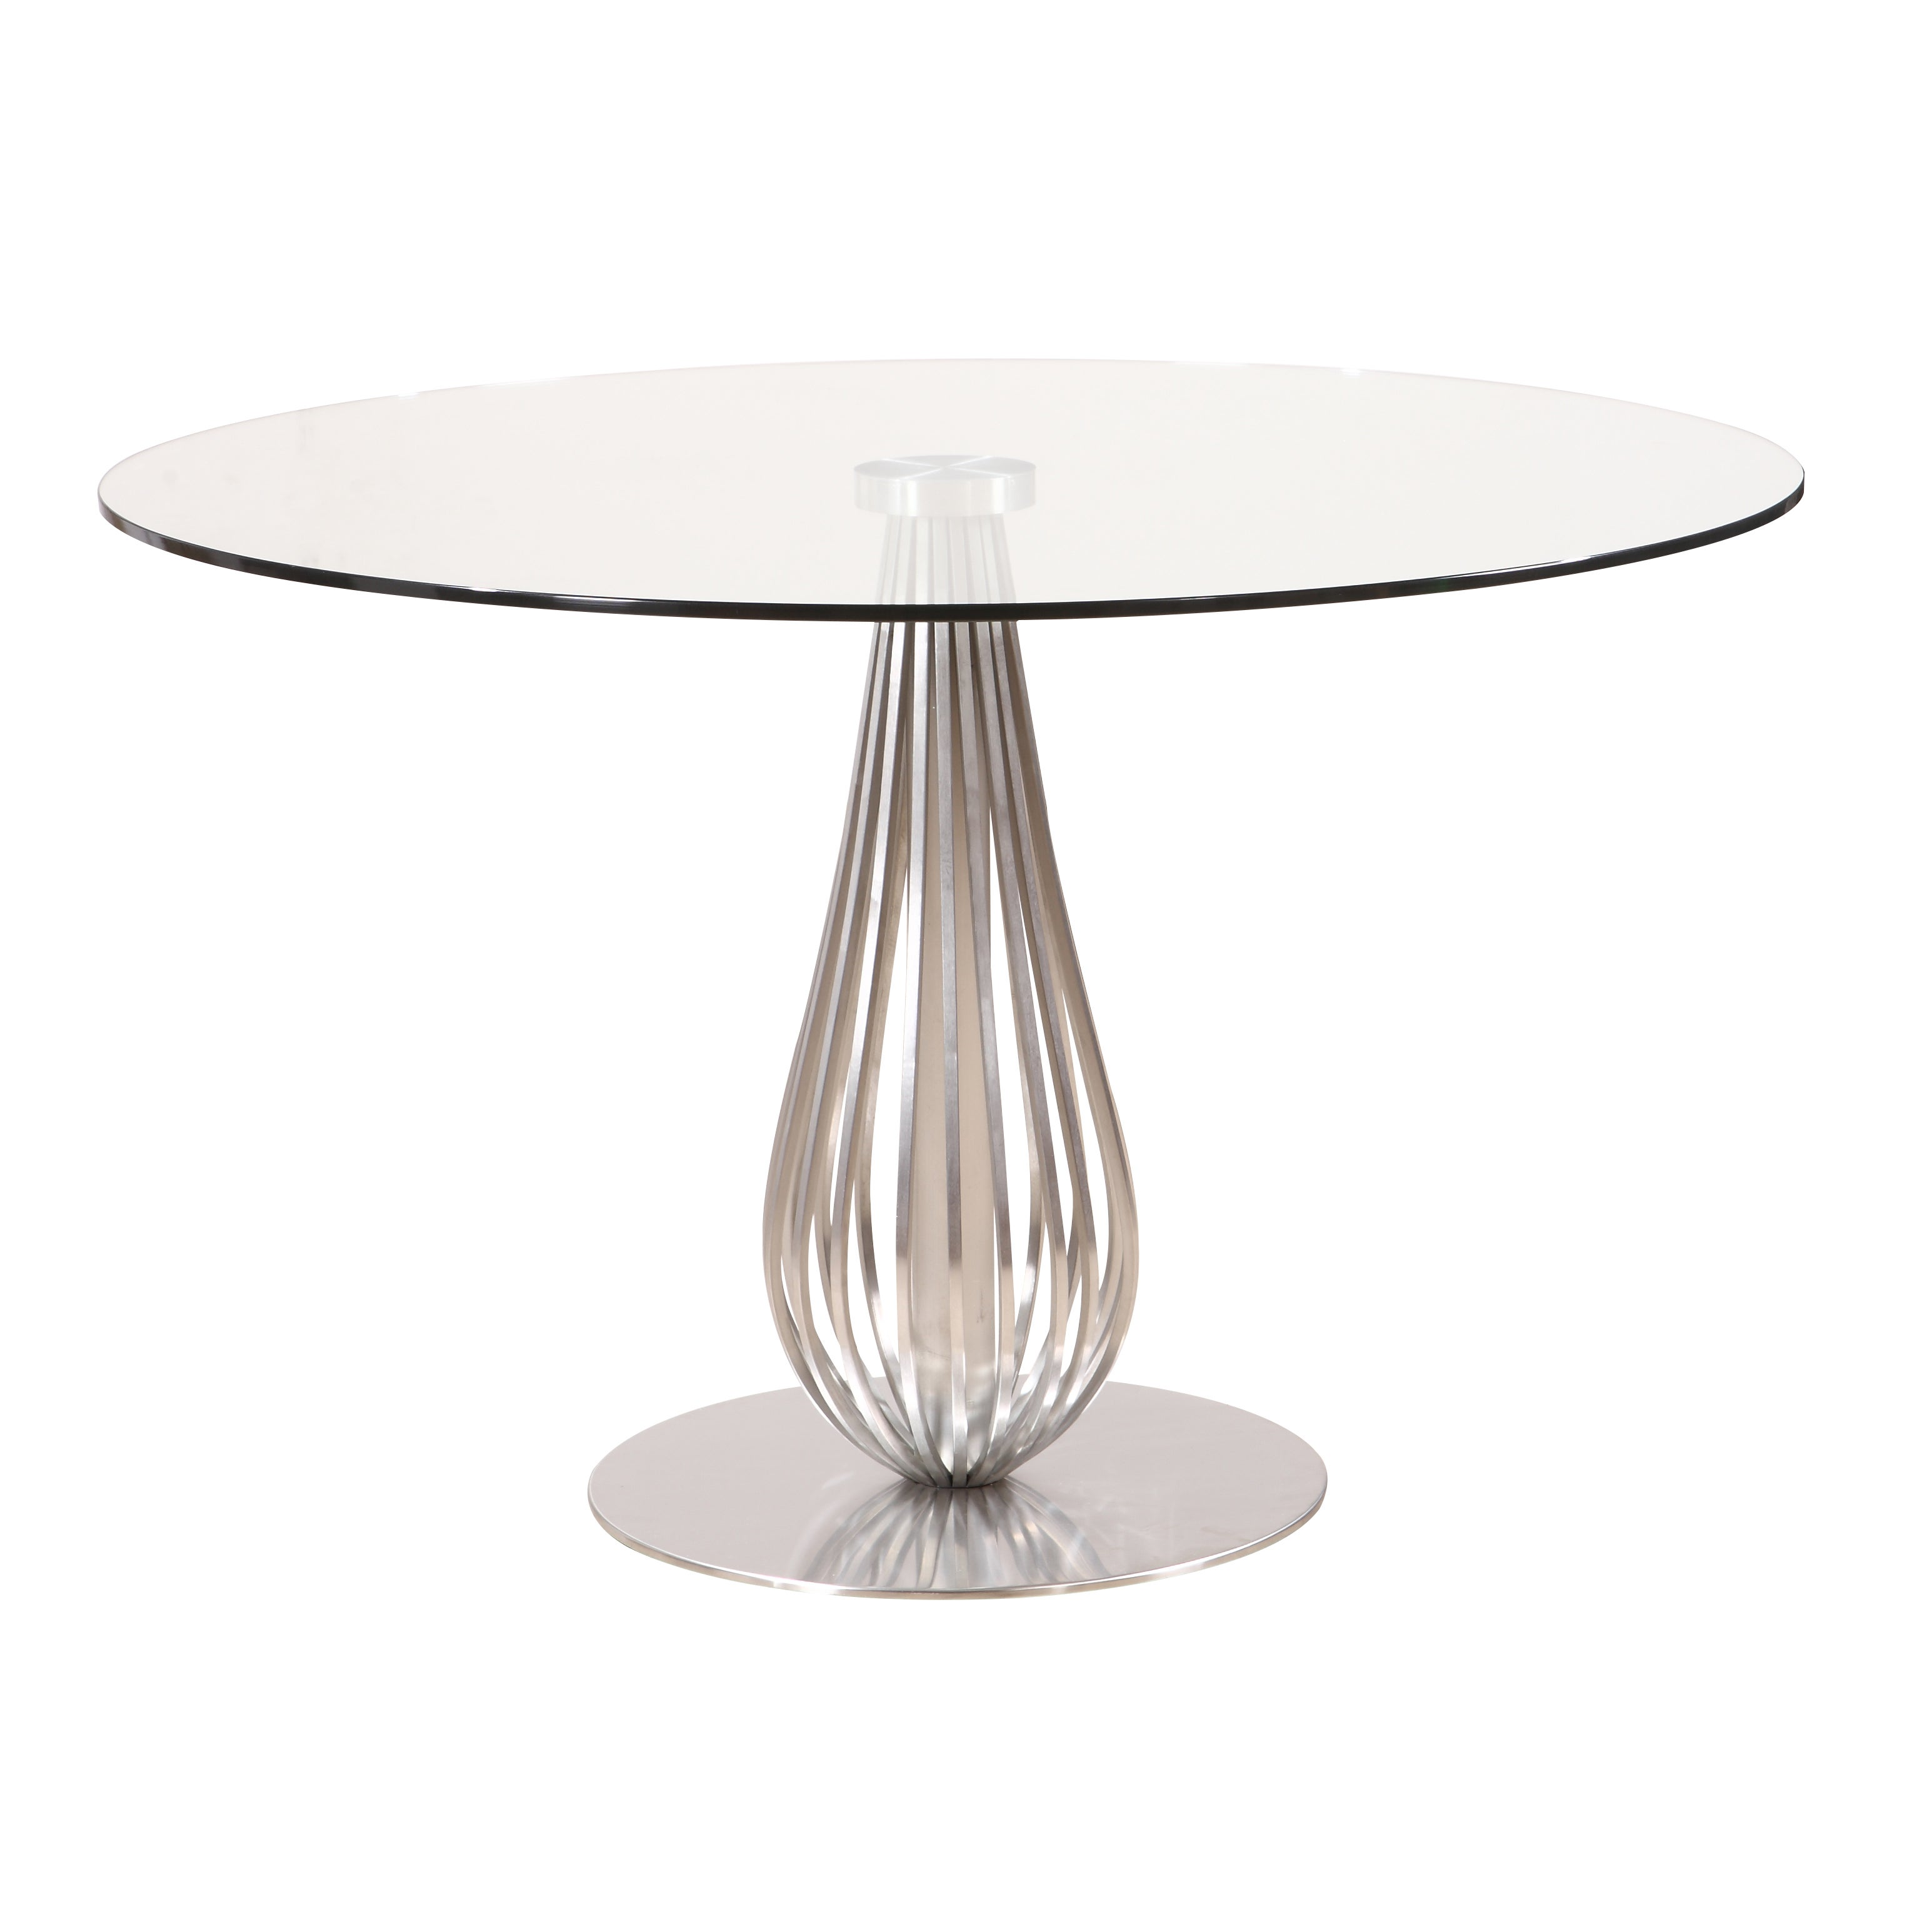 glass round dining table. Toscana Glass Round Dining Table - Free Shipping Today Overstock 19192078 S